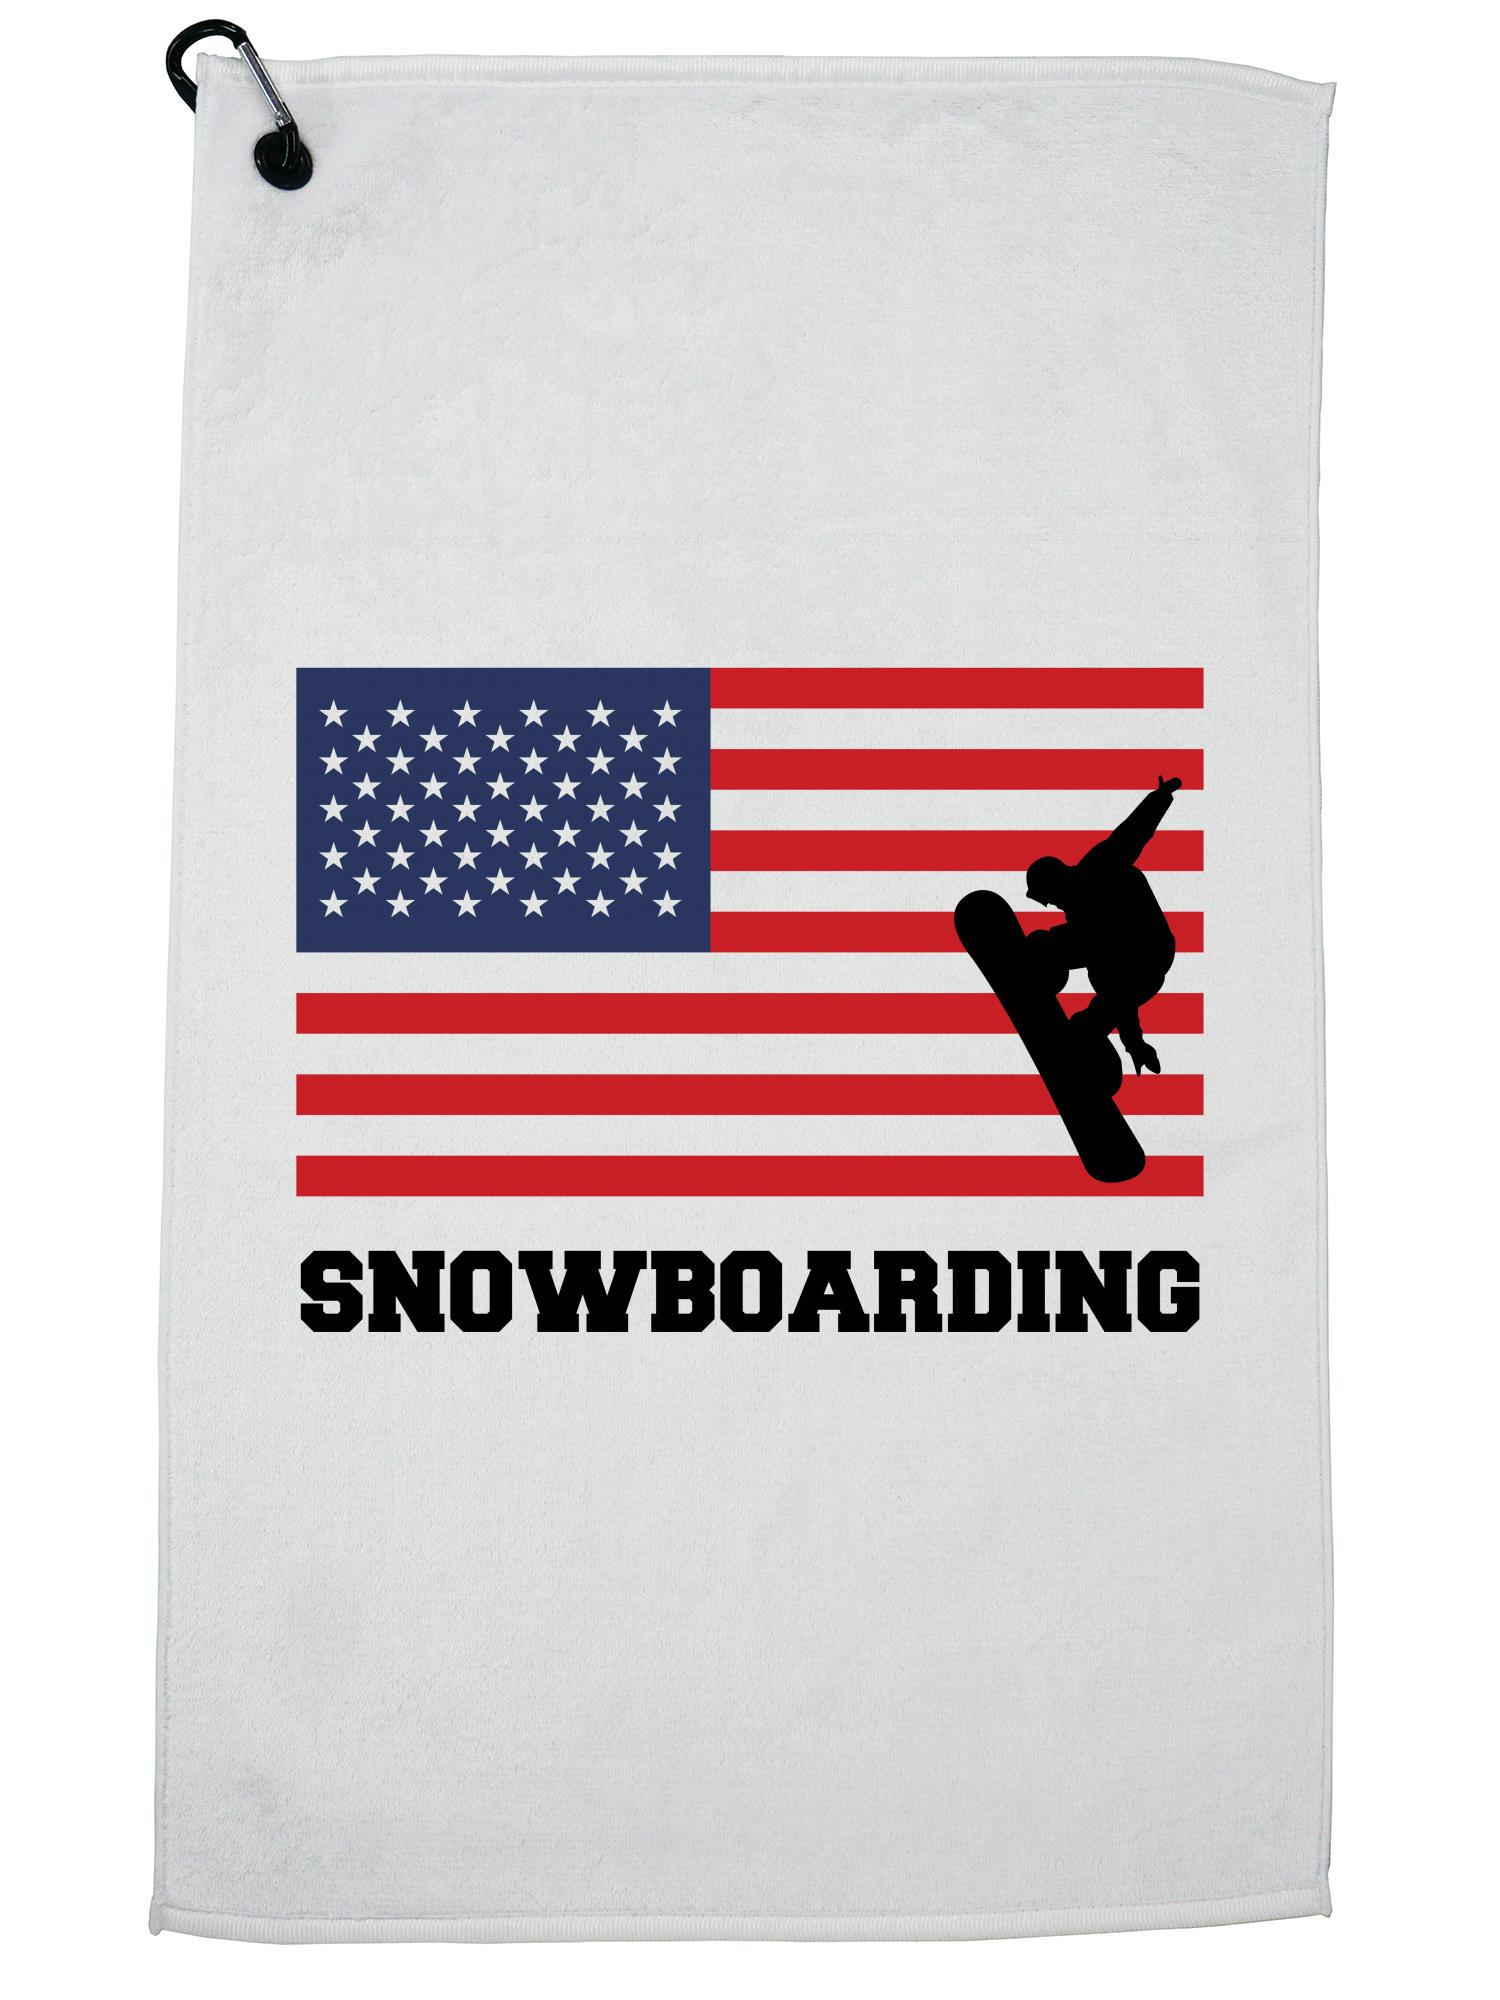 USA Snowboarding Winter Olympic Korea Flag Golf Towel with Carabiner Clip by Hollywood Thread